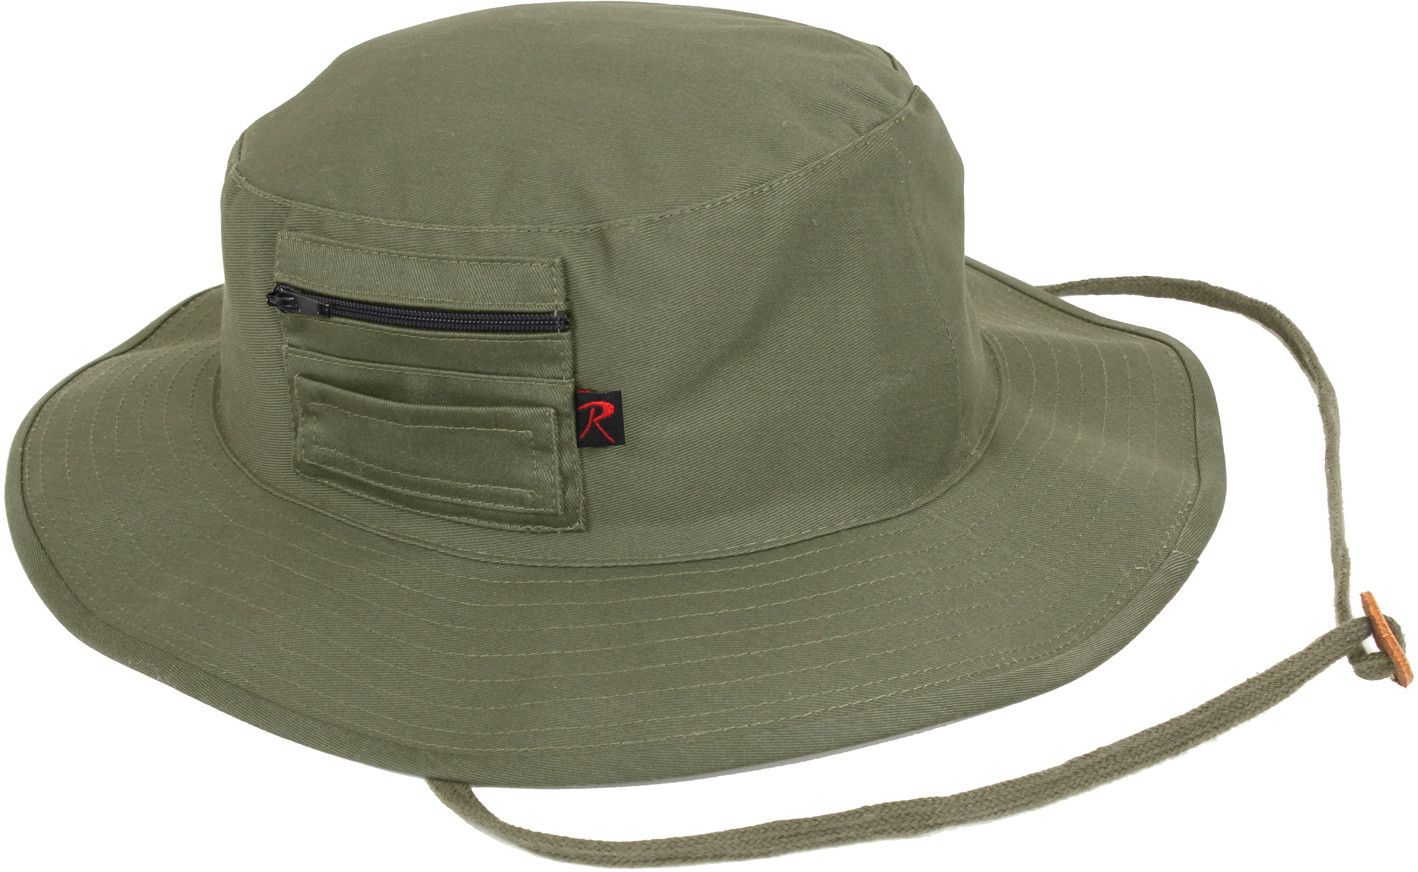 Olive Drab Wide Brim Military MA-1 Style Boonie Hat With Pocket 4c96ac7e790